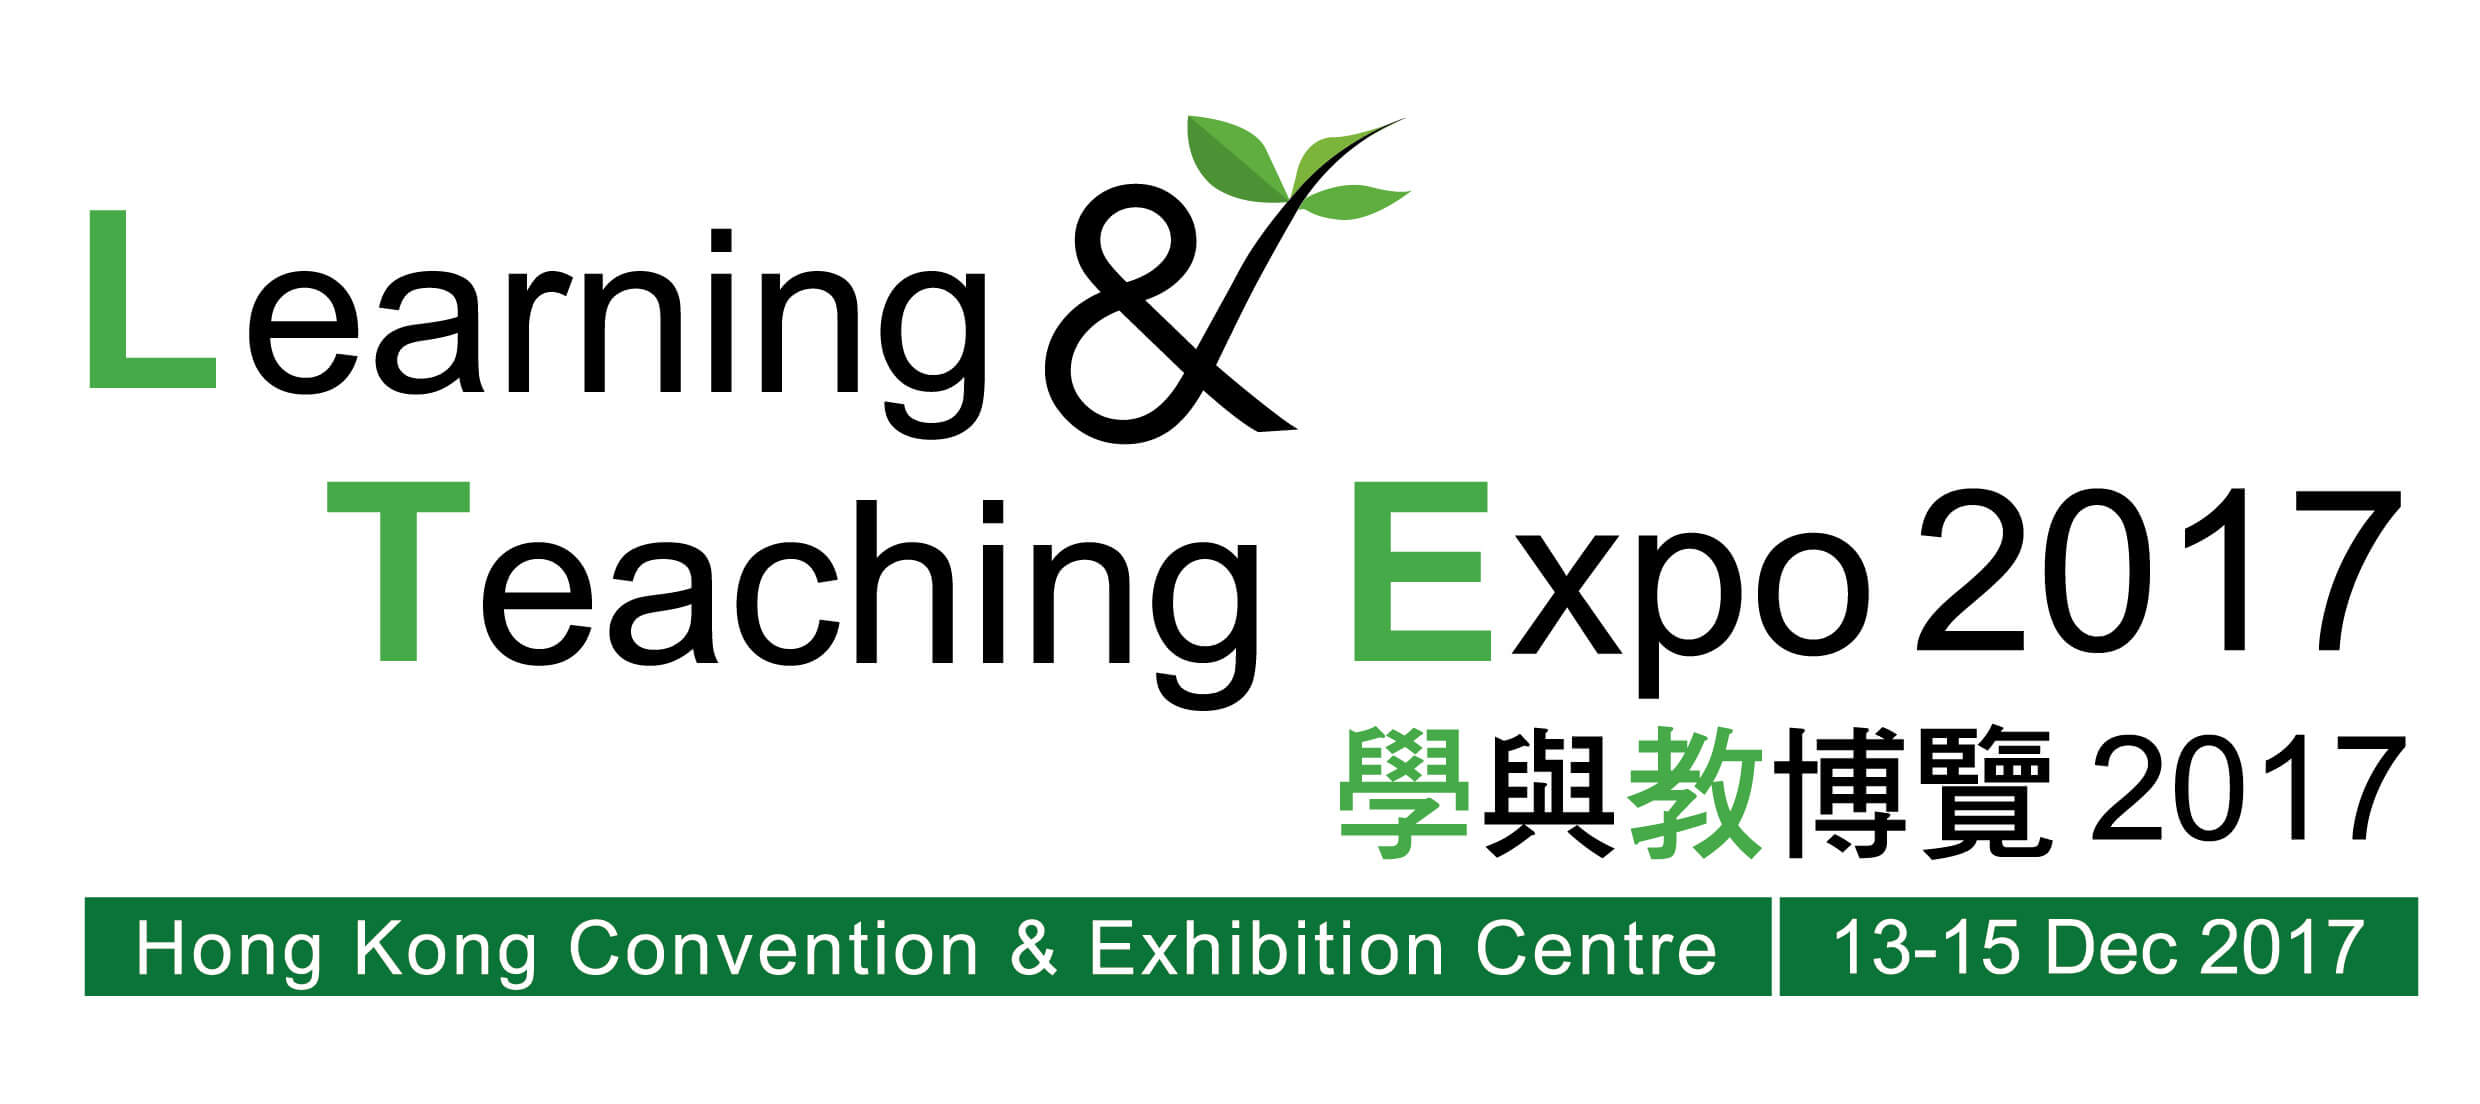 Learning & Teaching EXPO 2017